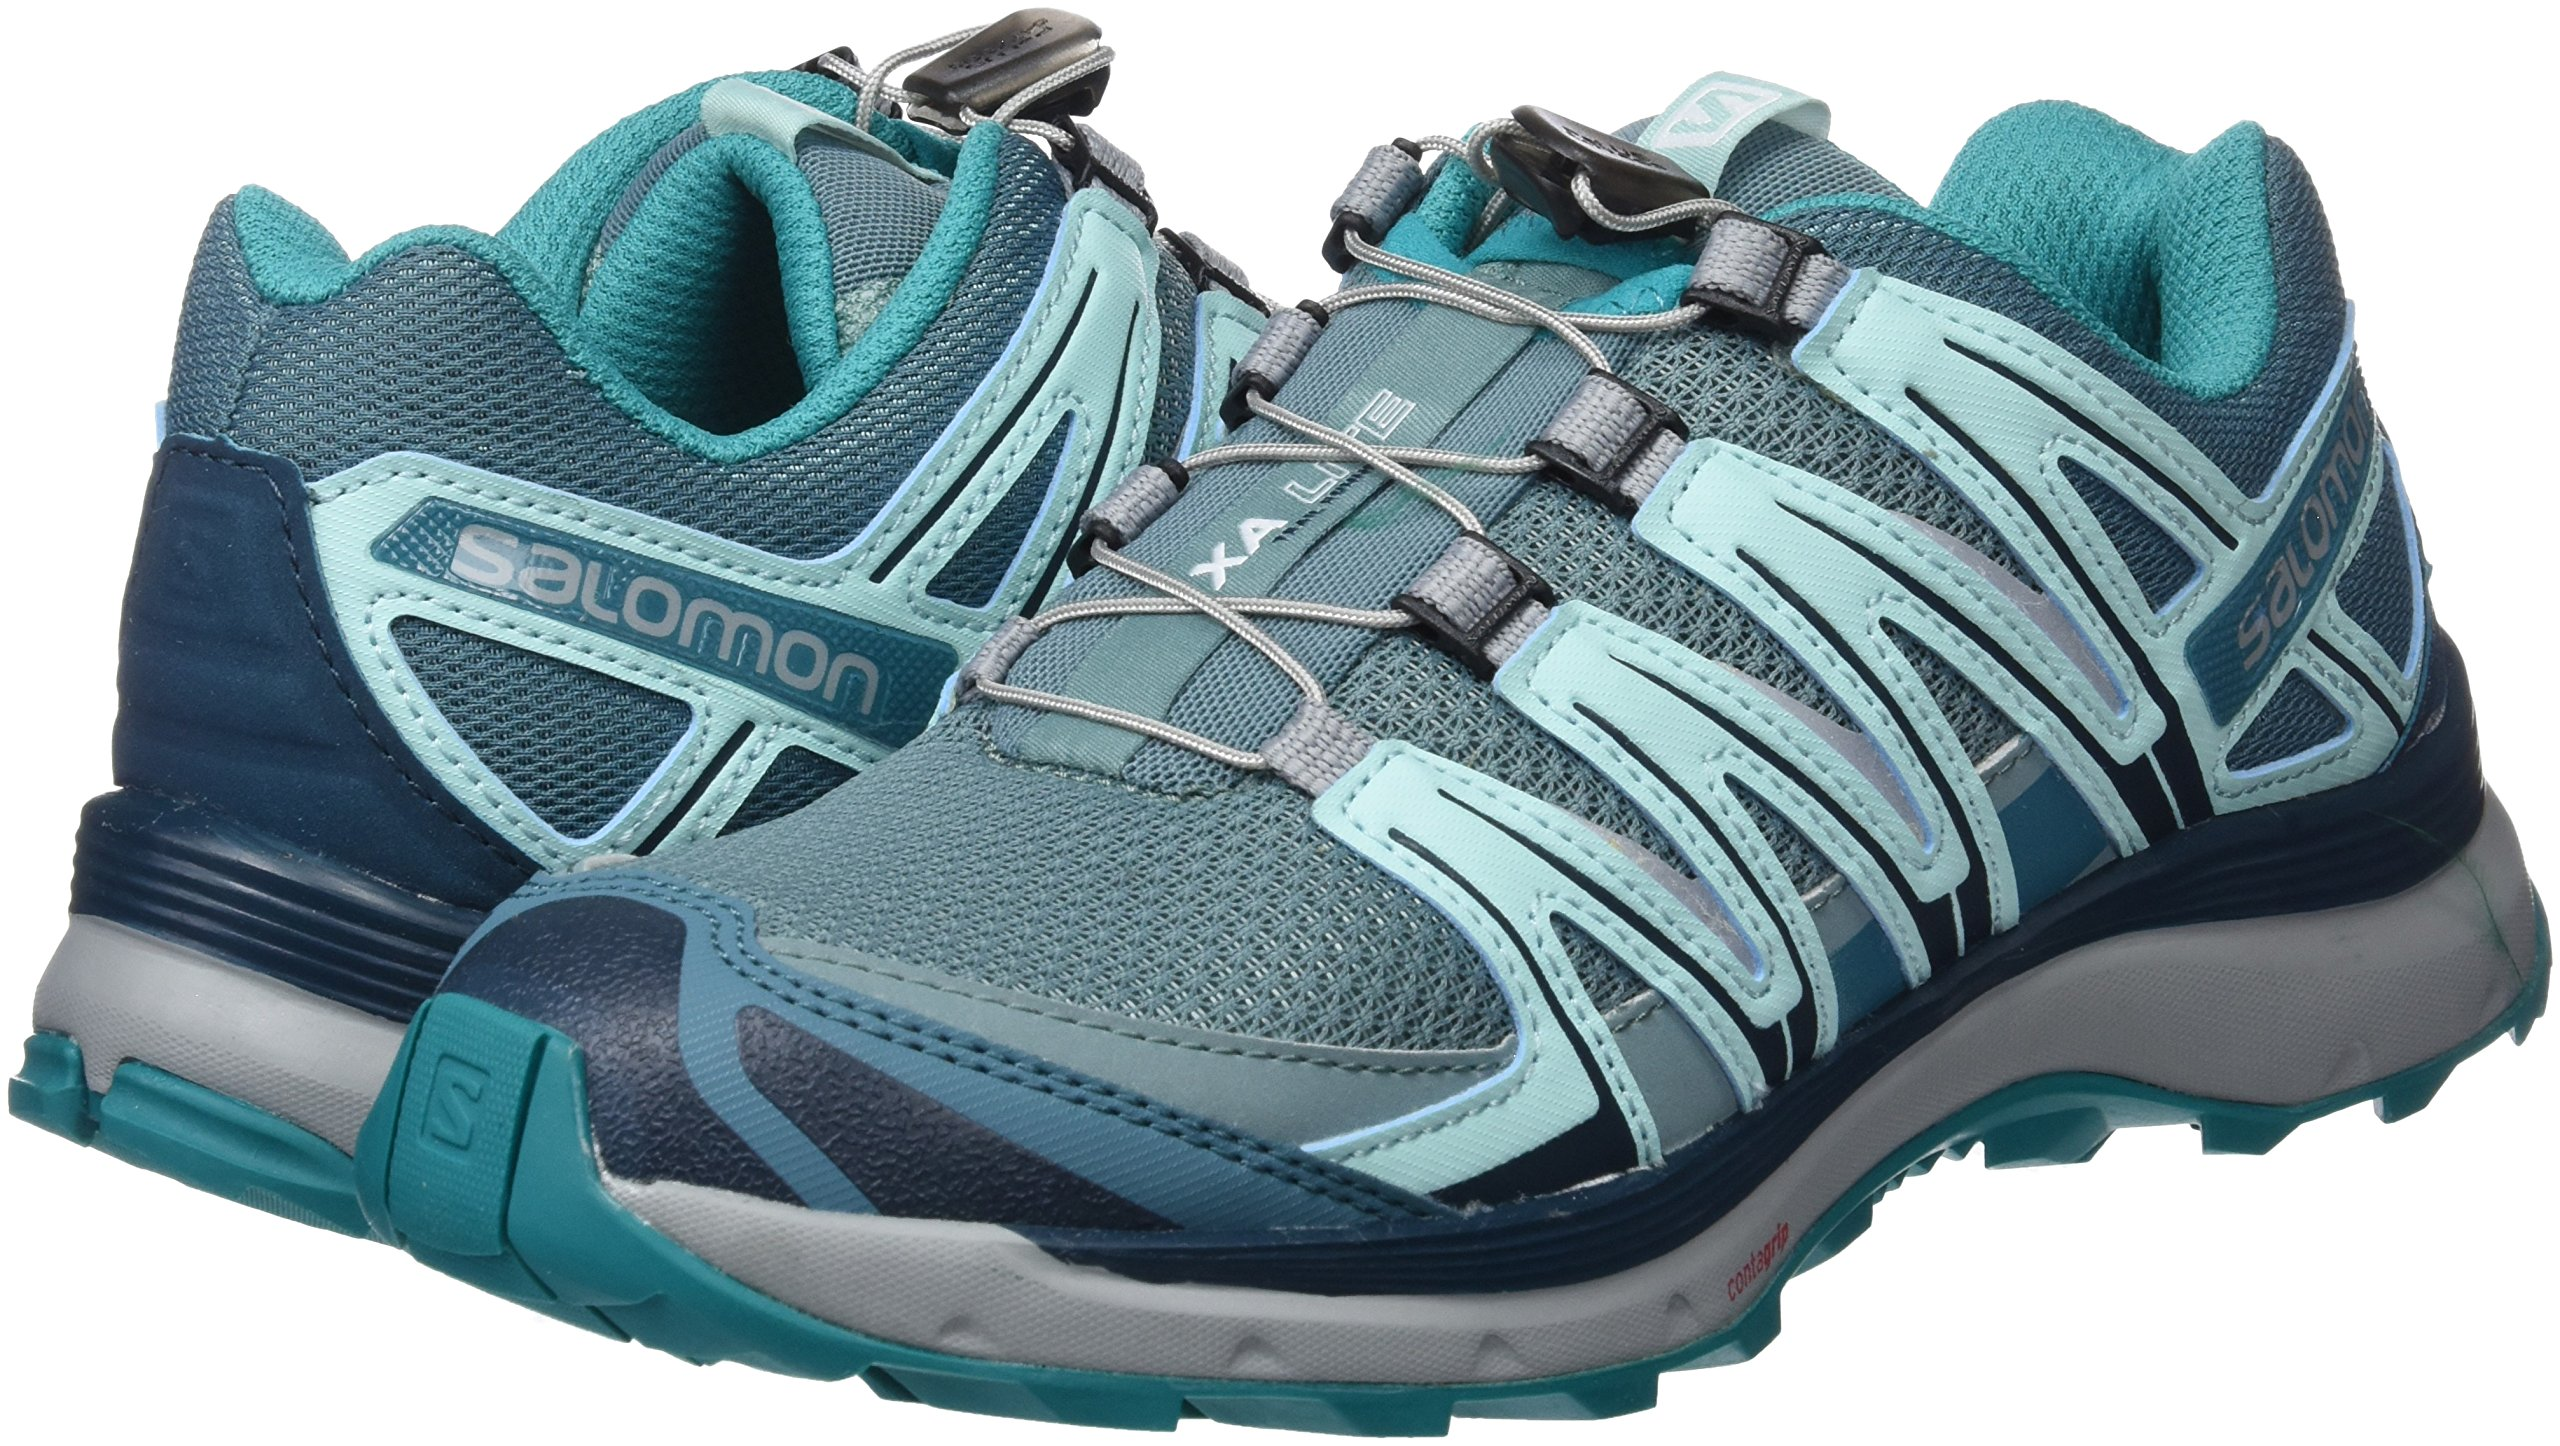 91UD3NxHoCL - SALOMON Women's Xa Lite W Trail Running Shoes